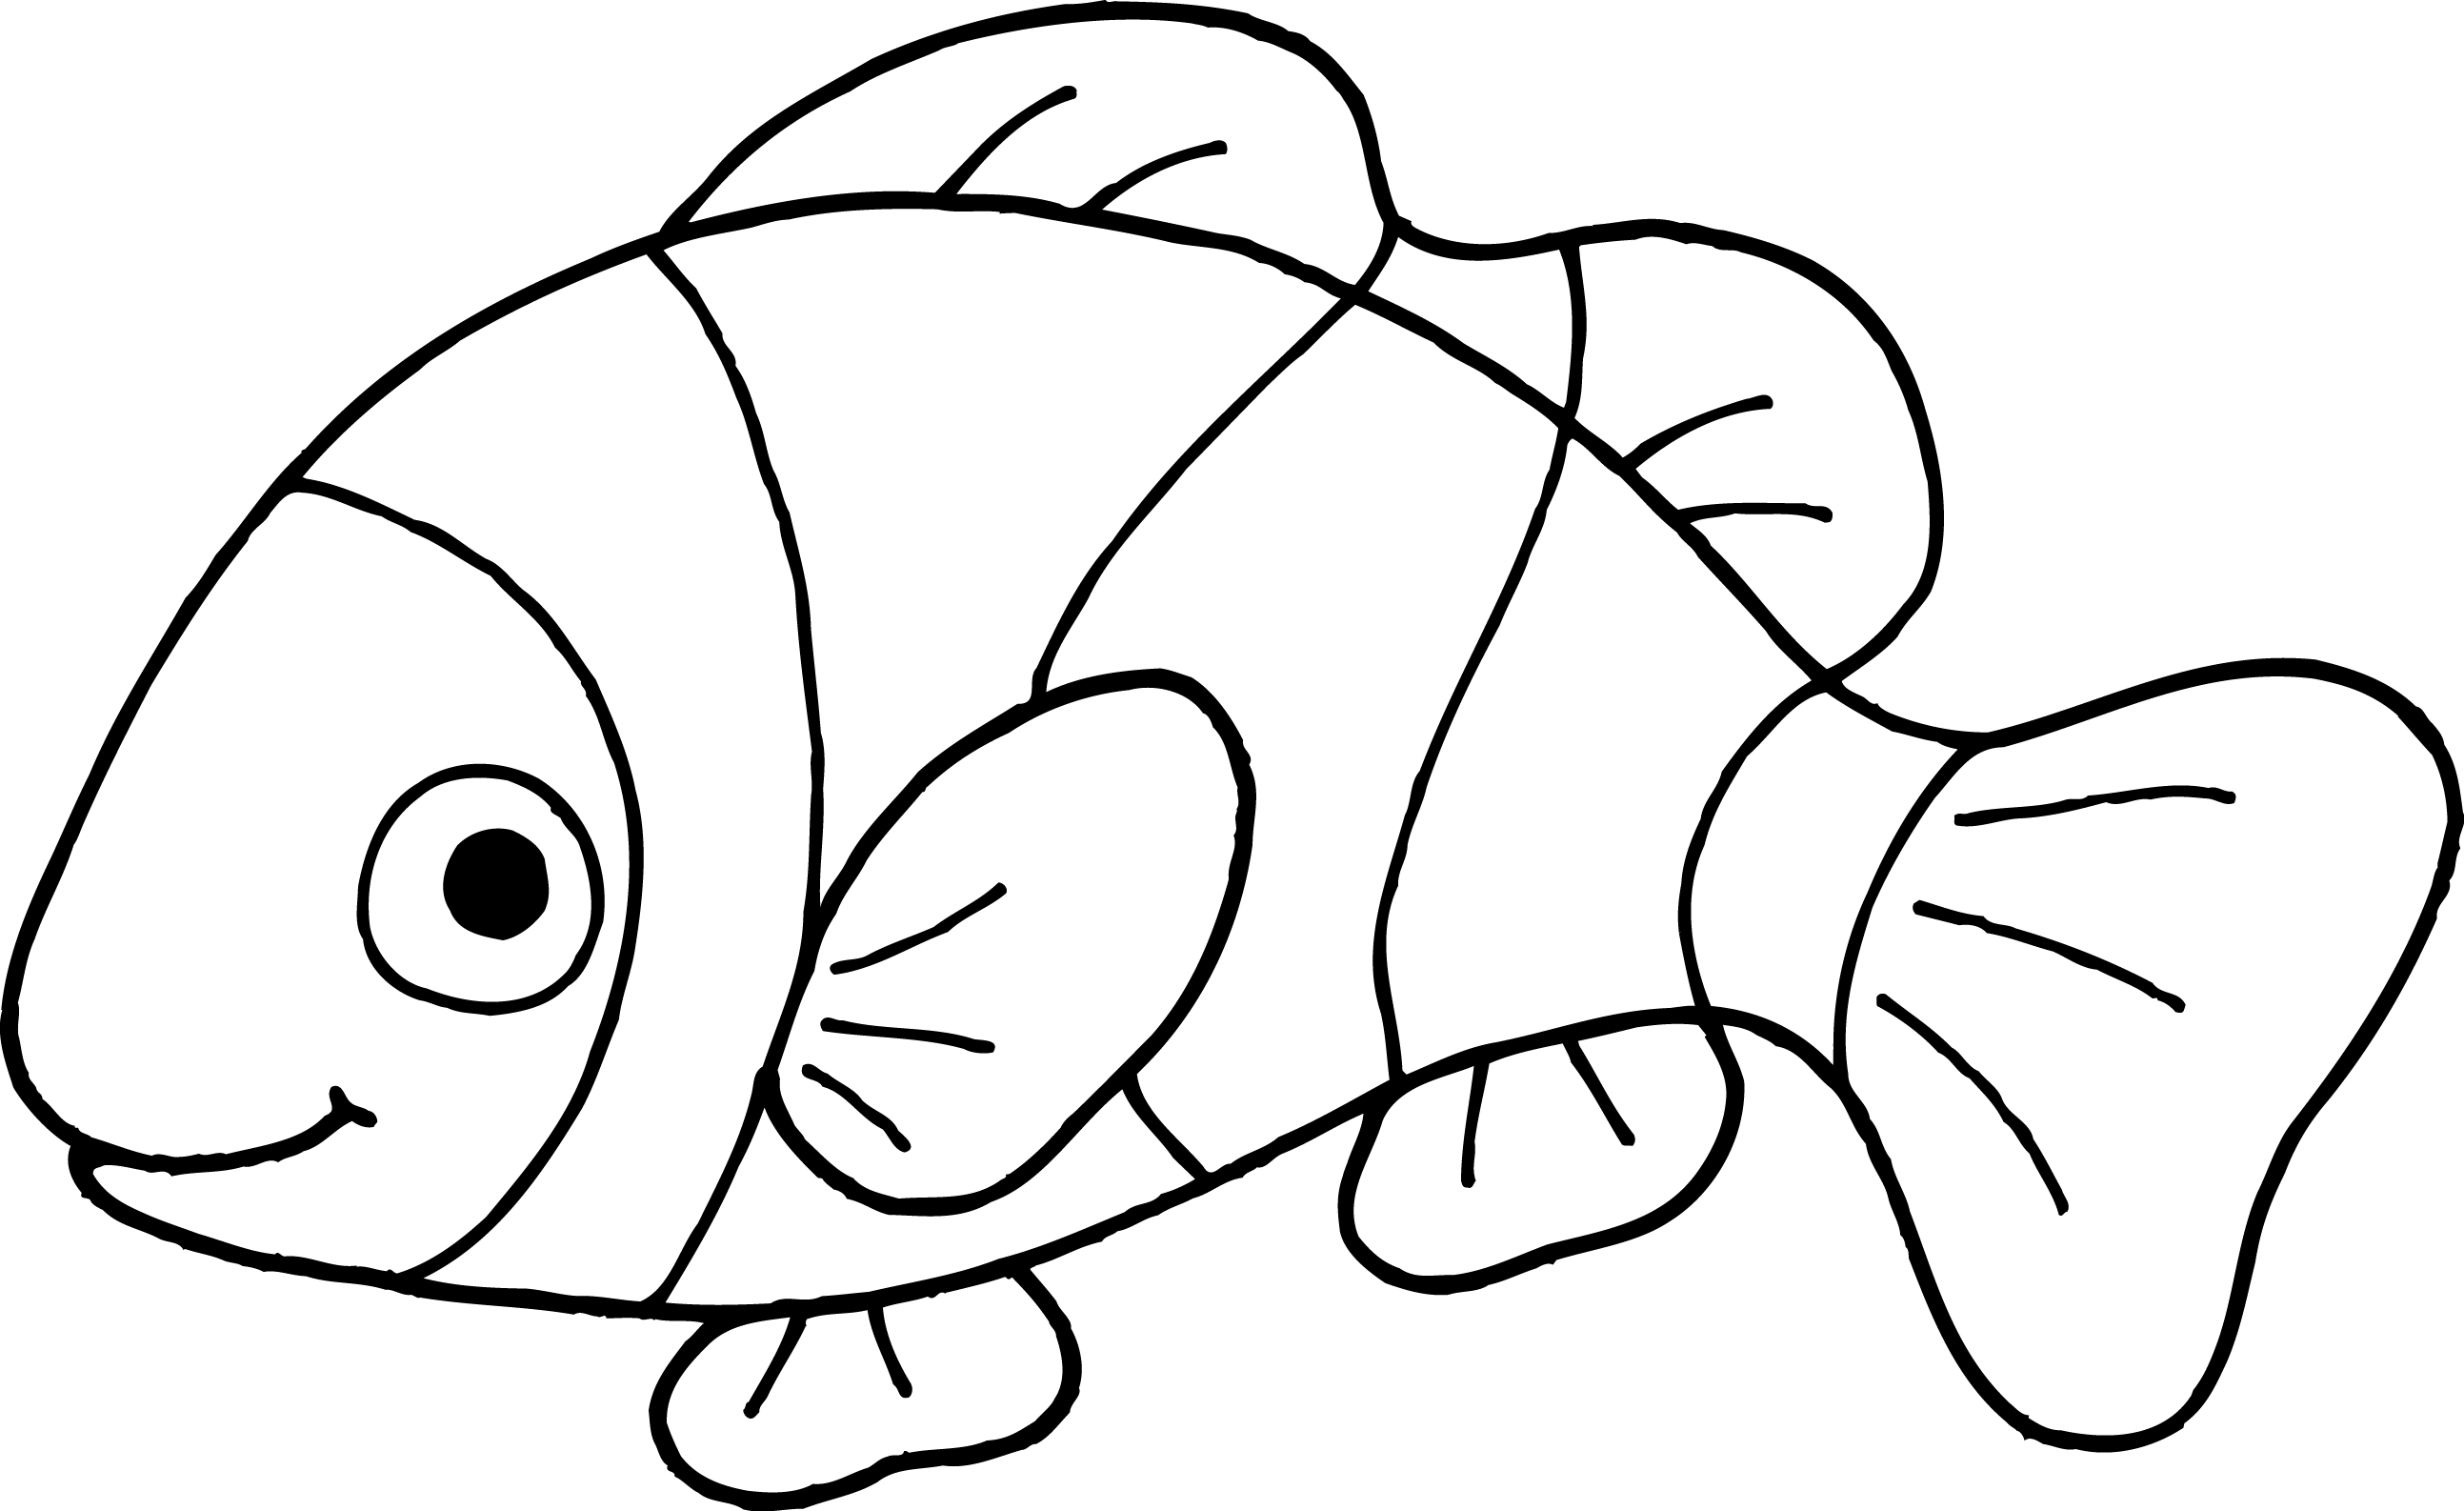 Fish scales background black white clipart image library download 28+ Collection of Clown Fish Line Drawing | High quality, free ... image library download